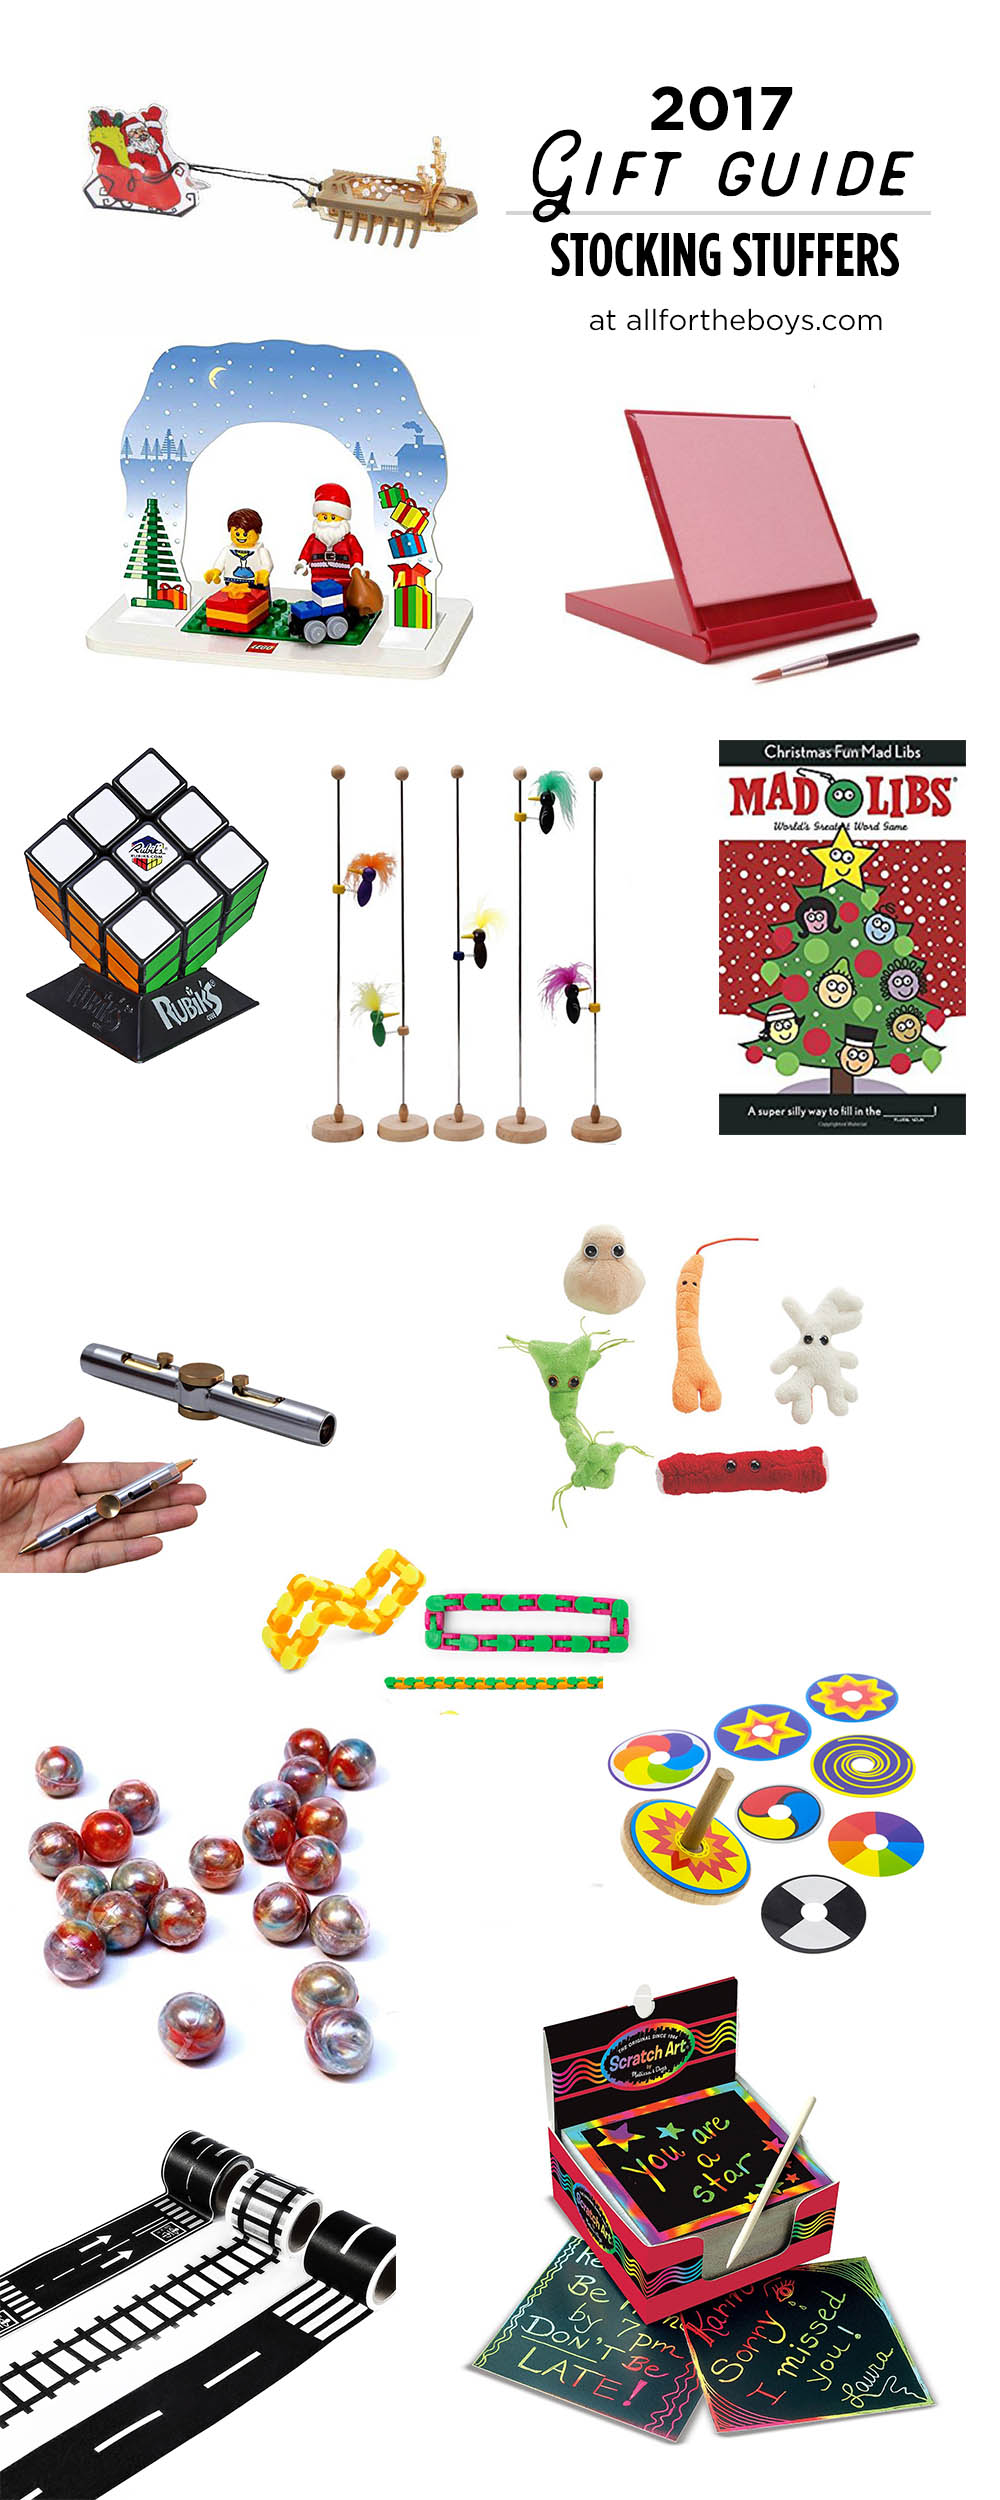 Lots of great last minute gift ideas in this gift guide of stocking stuffers